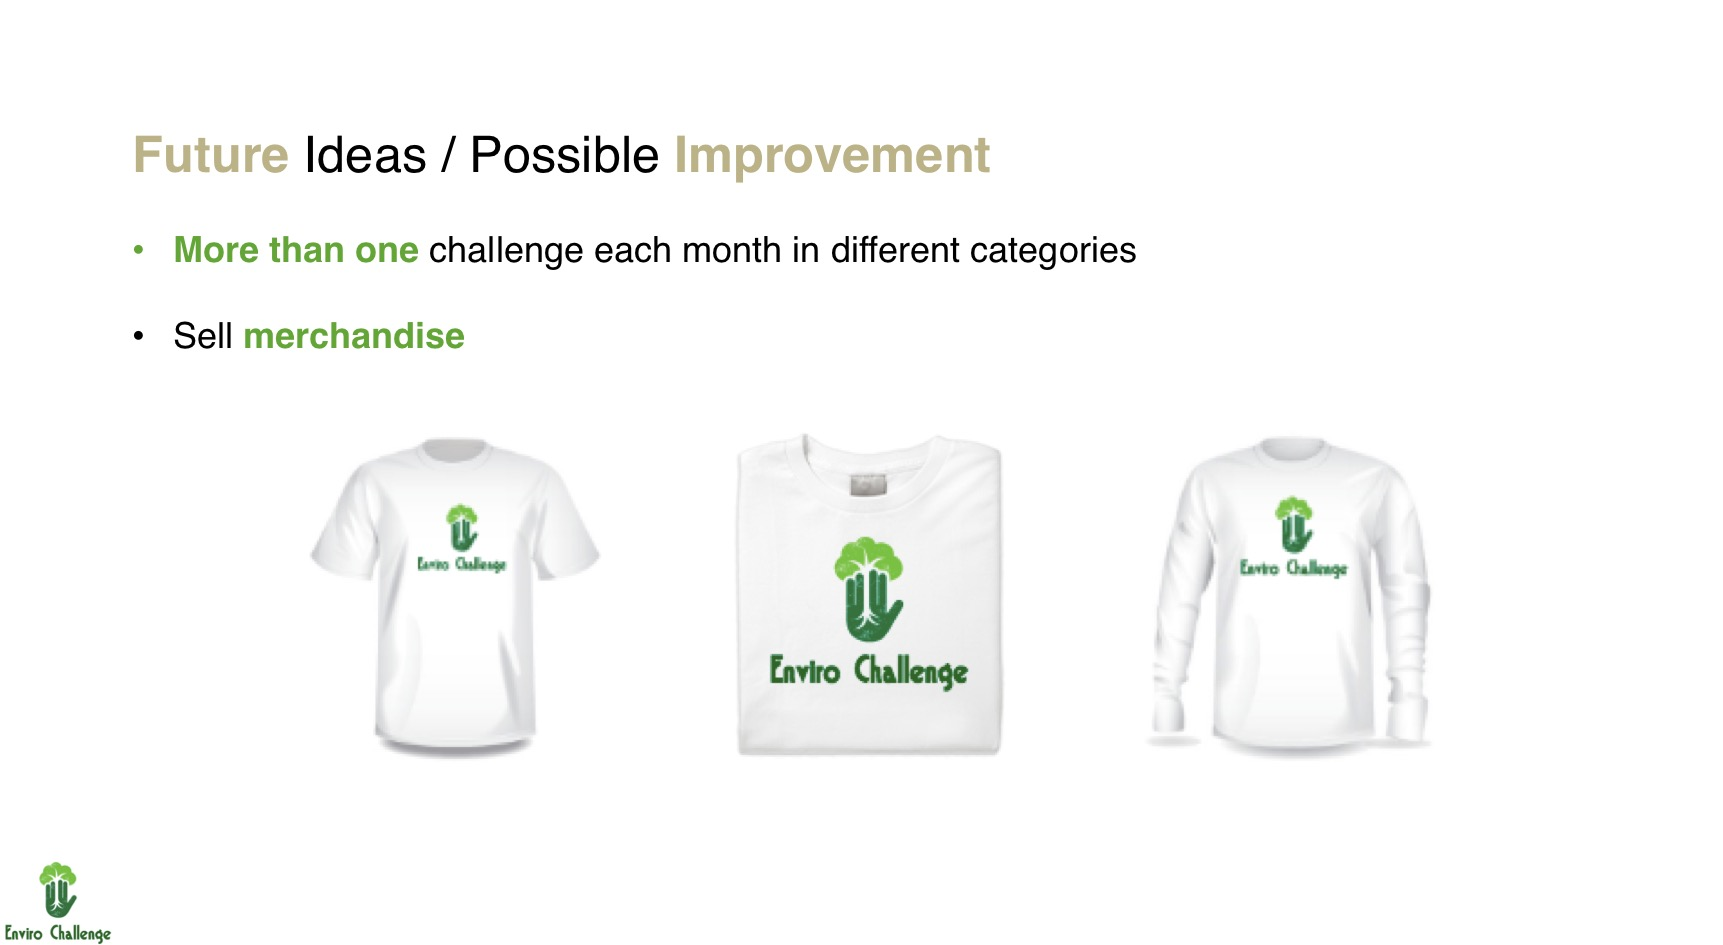 A slide from the Enviro Challenge pitch featuring merchandise ideas